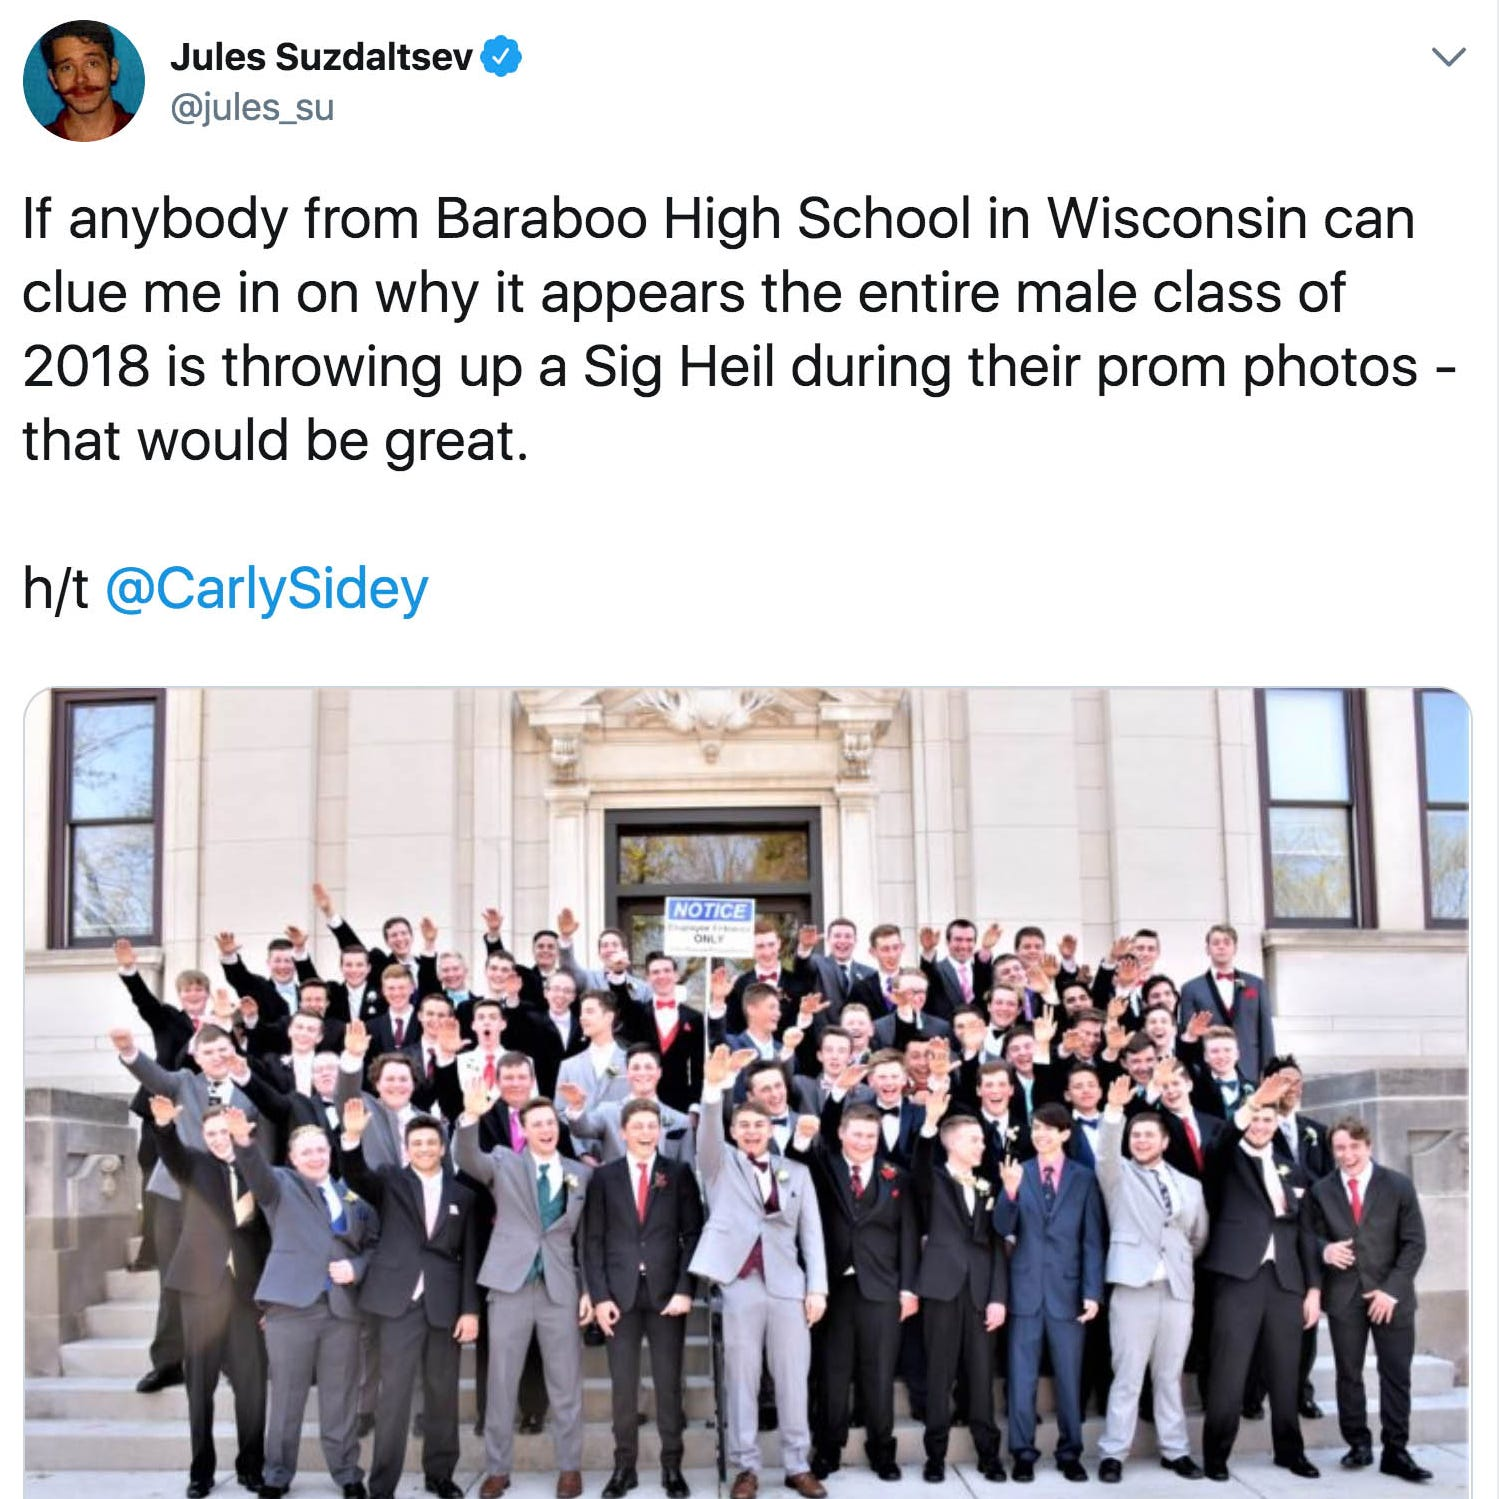 Before Nazi salute picture, Baraboo schools saw a rise in racial complaints